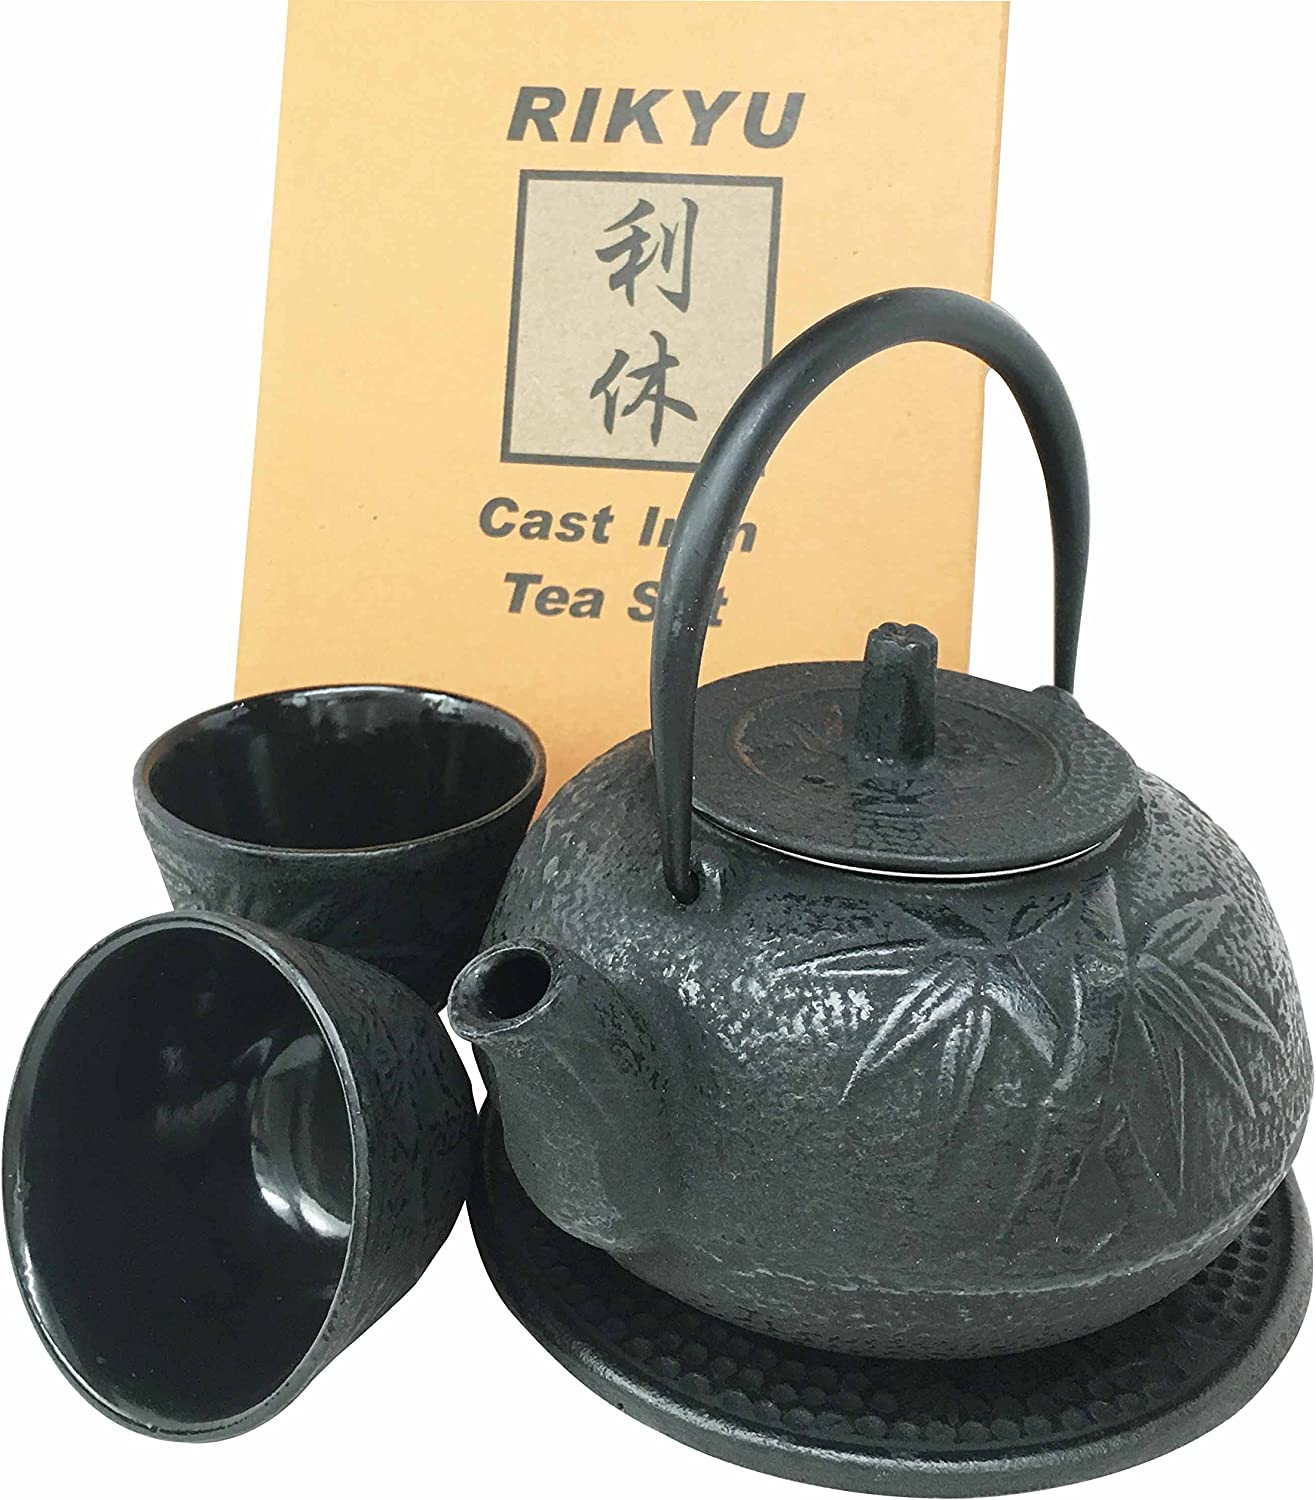 Japanese Evergreen Bamboo Forest Black Traditional Heavy Cast Iron Tea Pot Set With Trivet and Cups Set Serves 2 Beautifully Packaged in Teapot Gift Box Home Decor Asian Living Gift And Housewarming